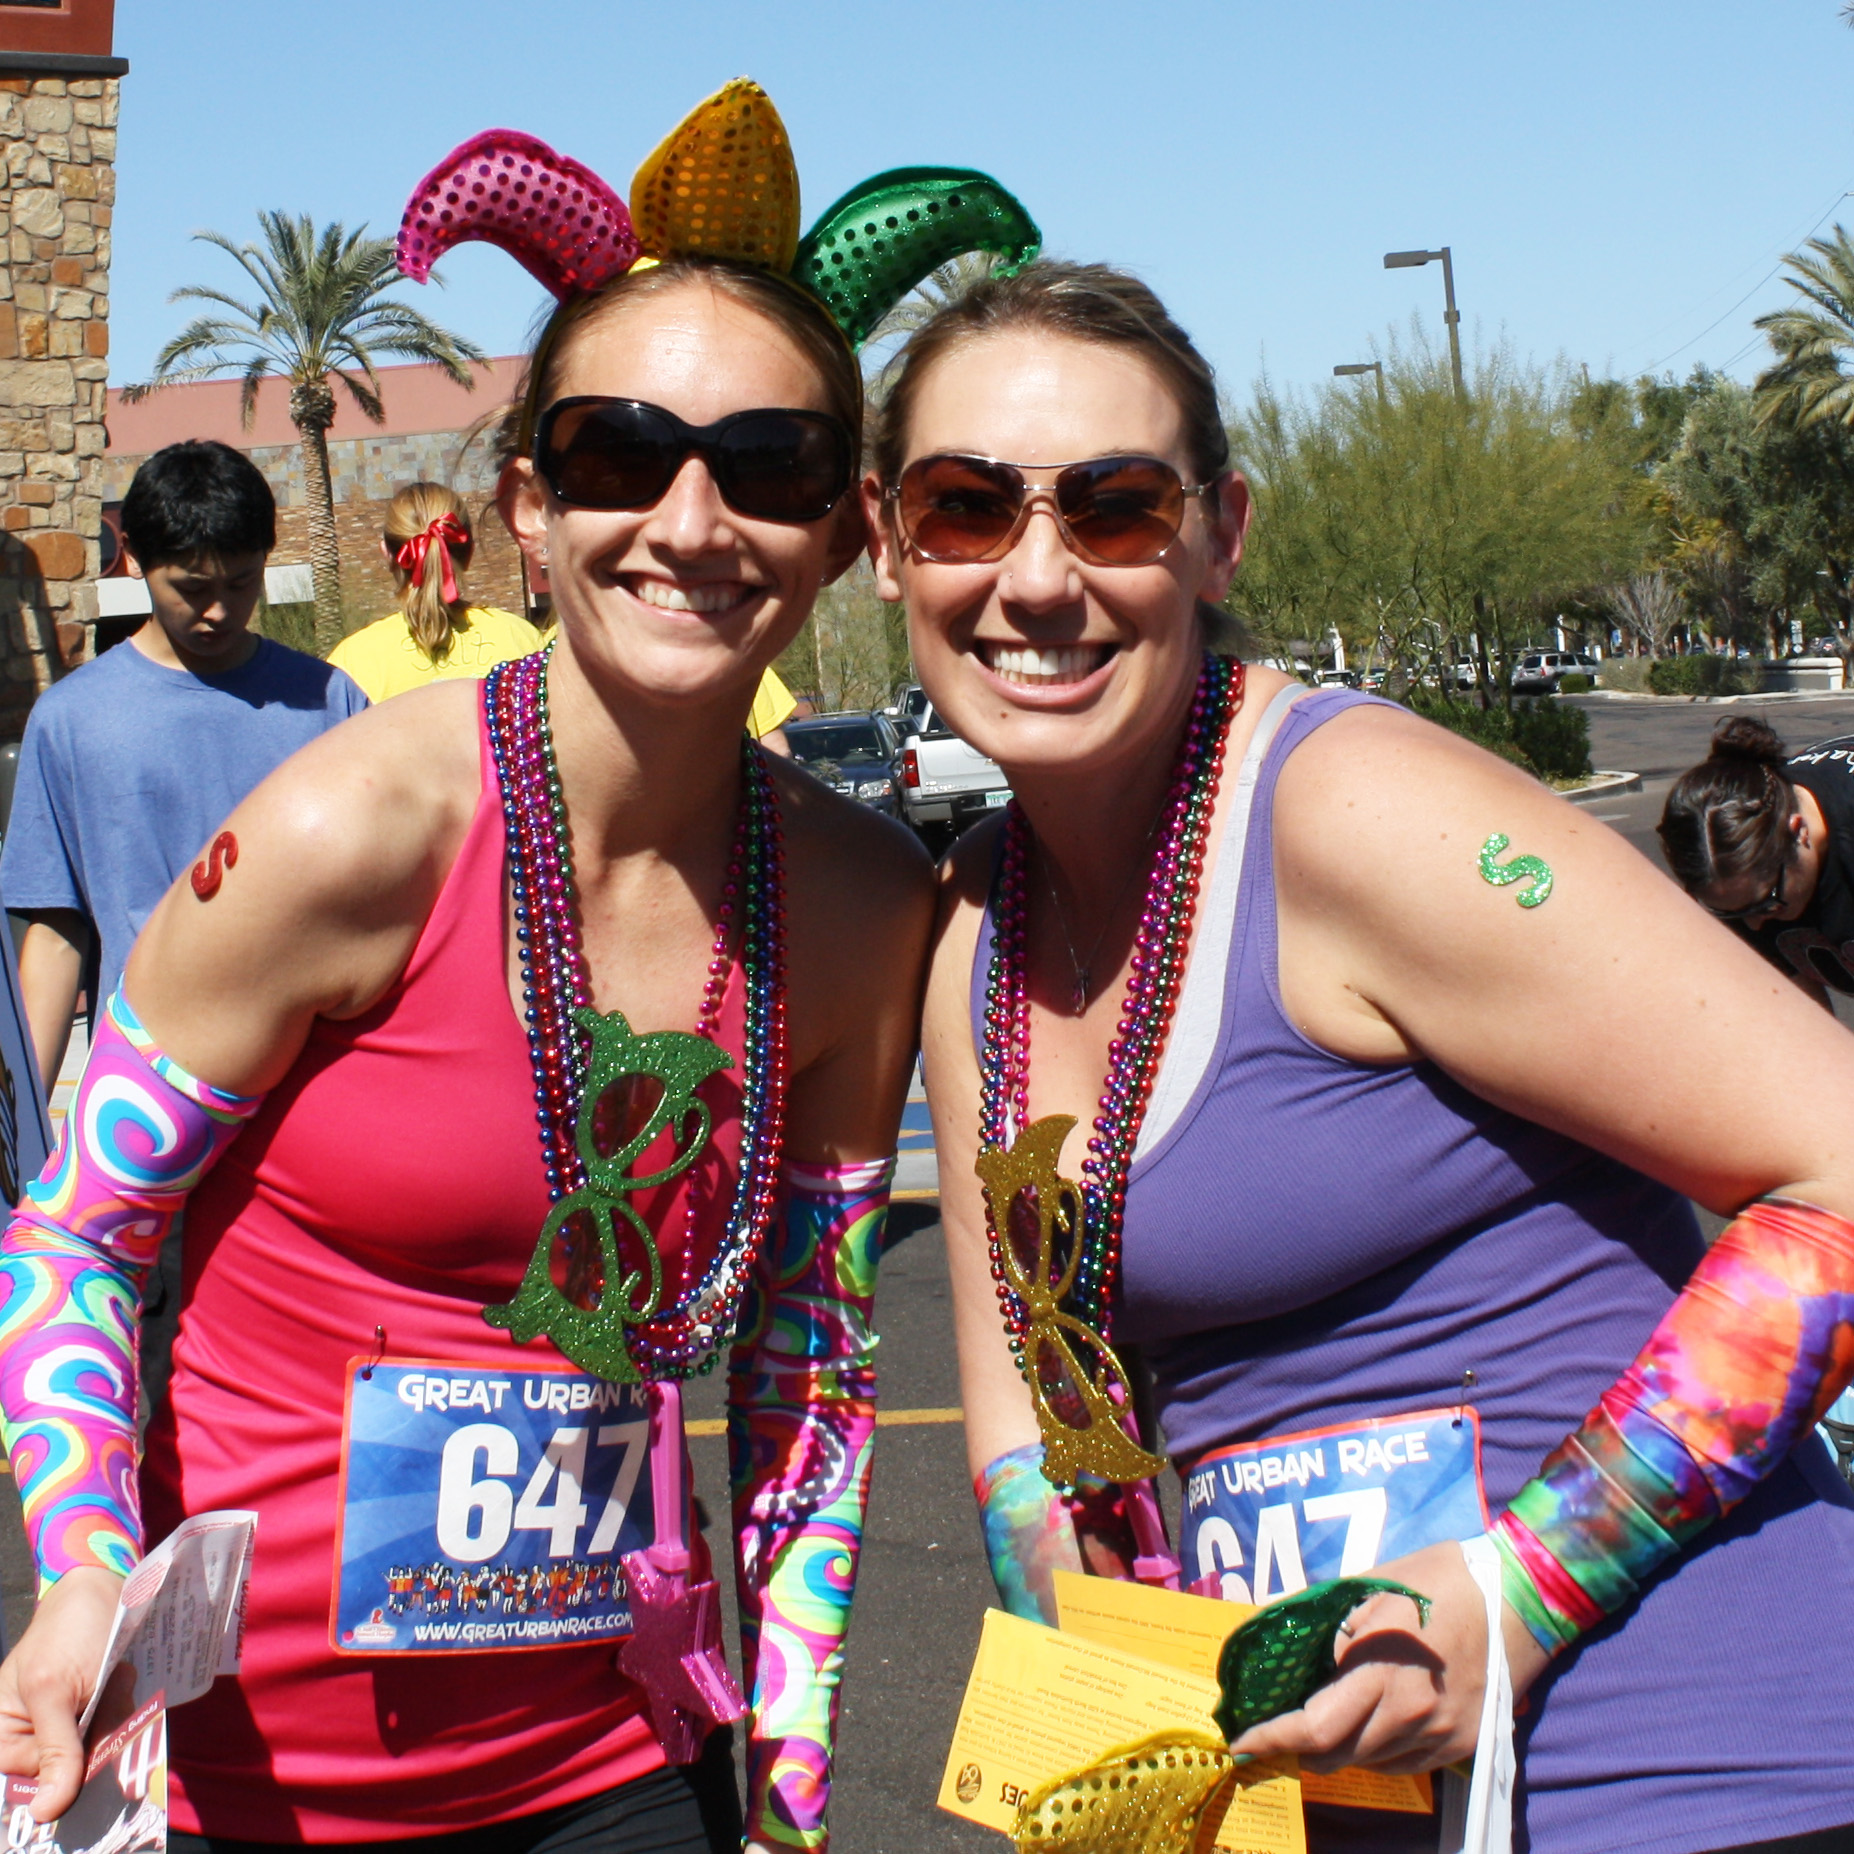 Two women dressed up in colorful gear for a 5k race